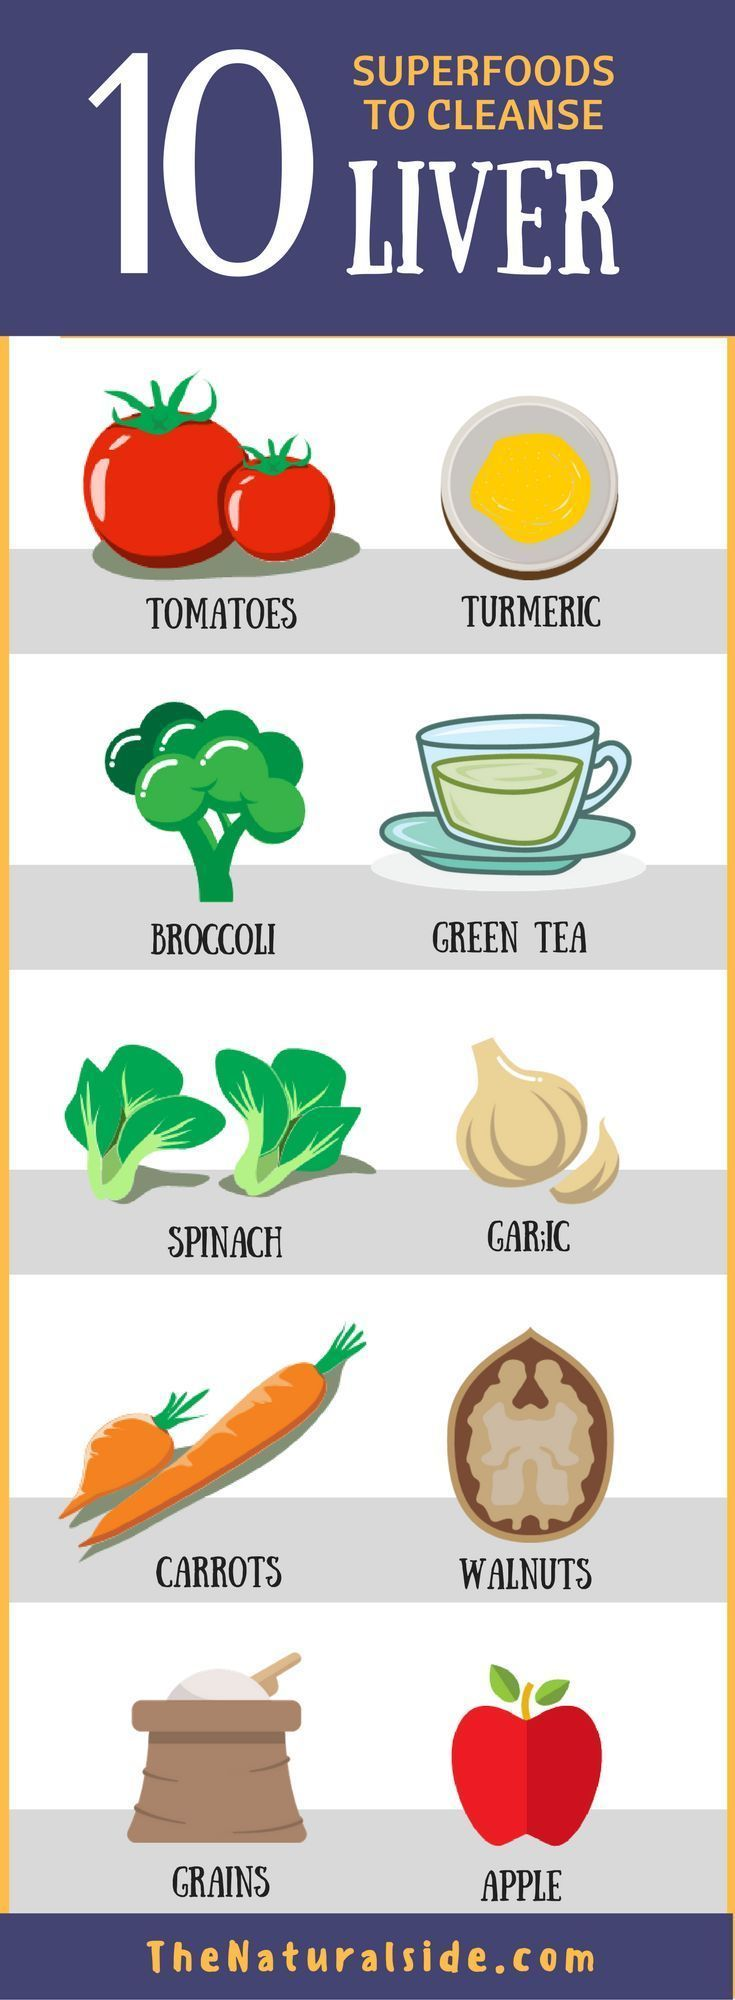 Cleanse Liver: 10 Foods Good for Liver Repair and Detox 1